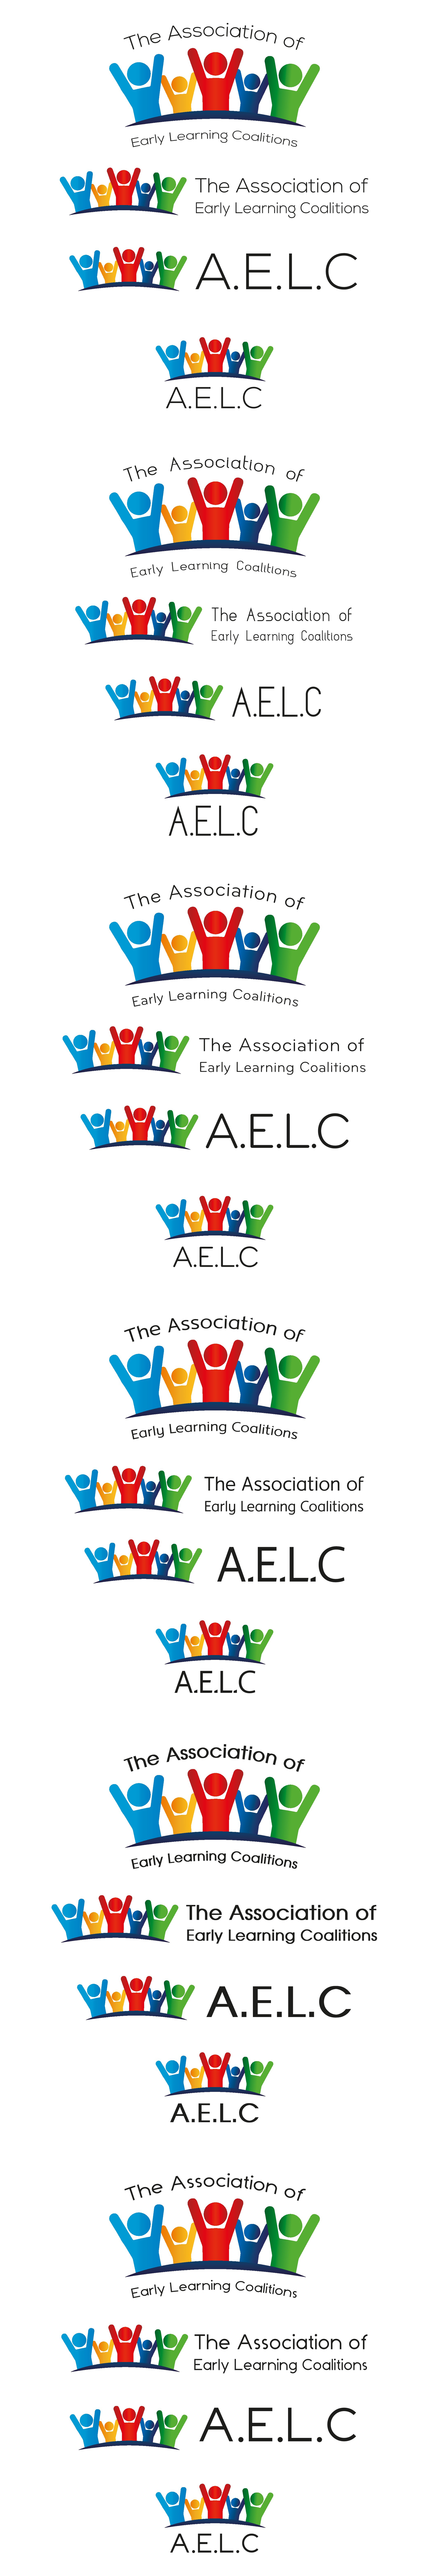 Association of Non-Profits needs a new logo with a similar feel - but more updated and attractive